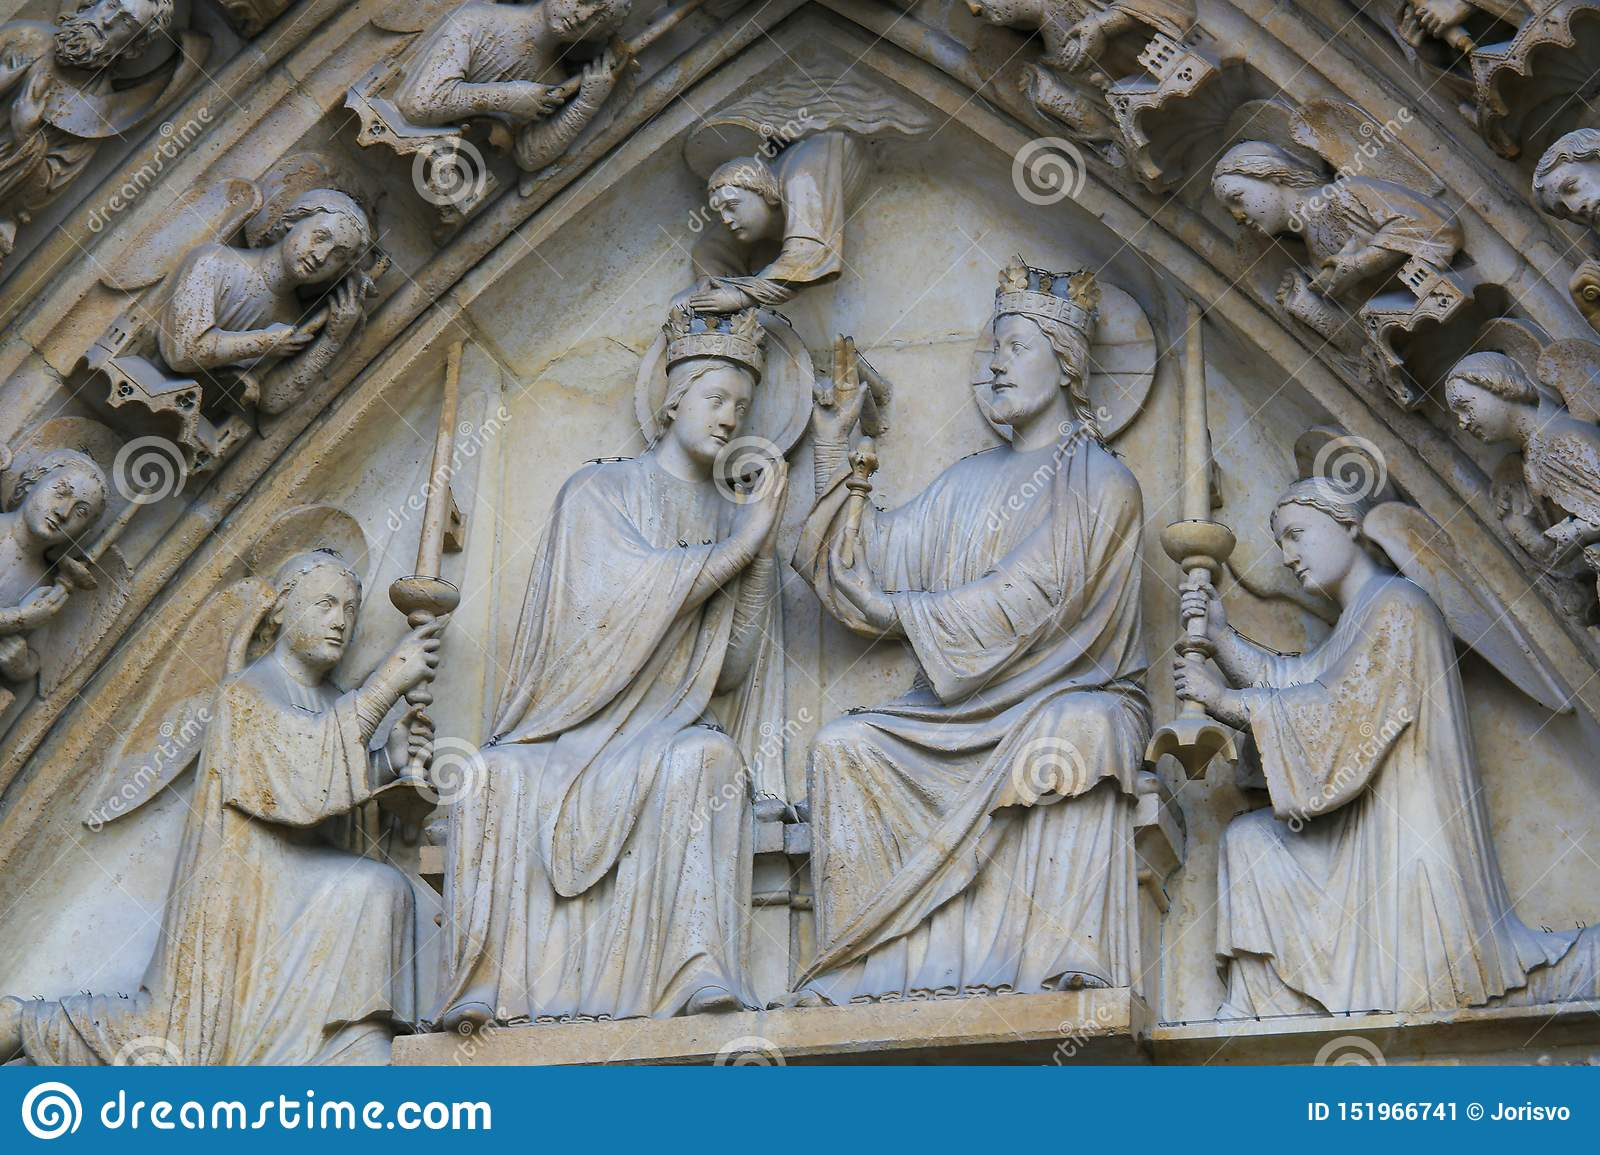 Coronation of Mary by Christ at Notre Dame, Paris